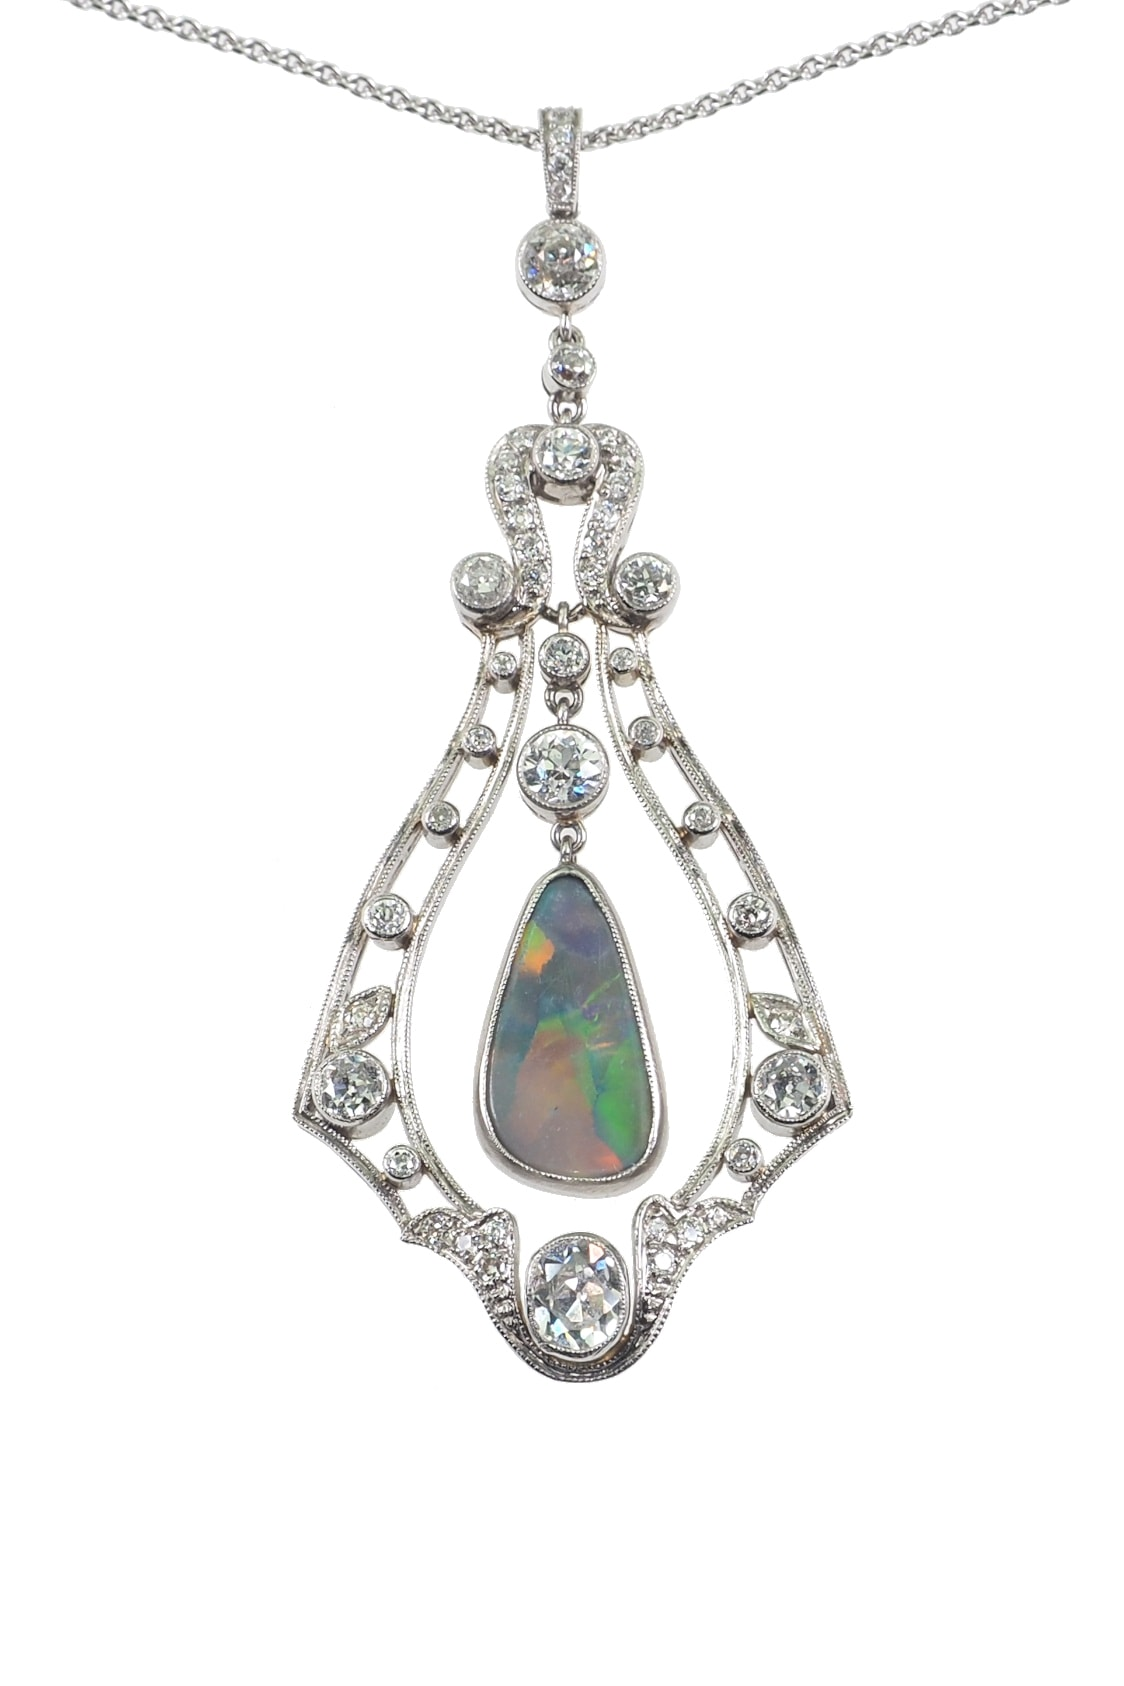 luxurious-antique-jewellery-2827a